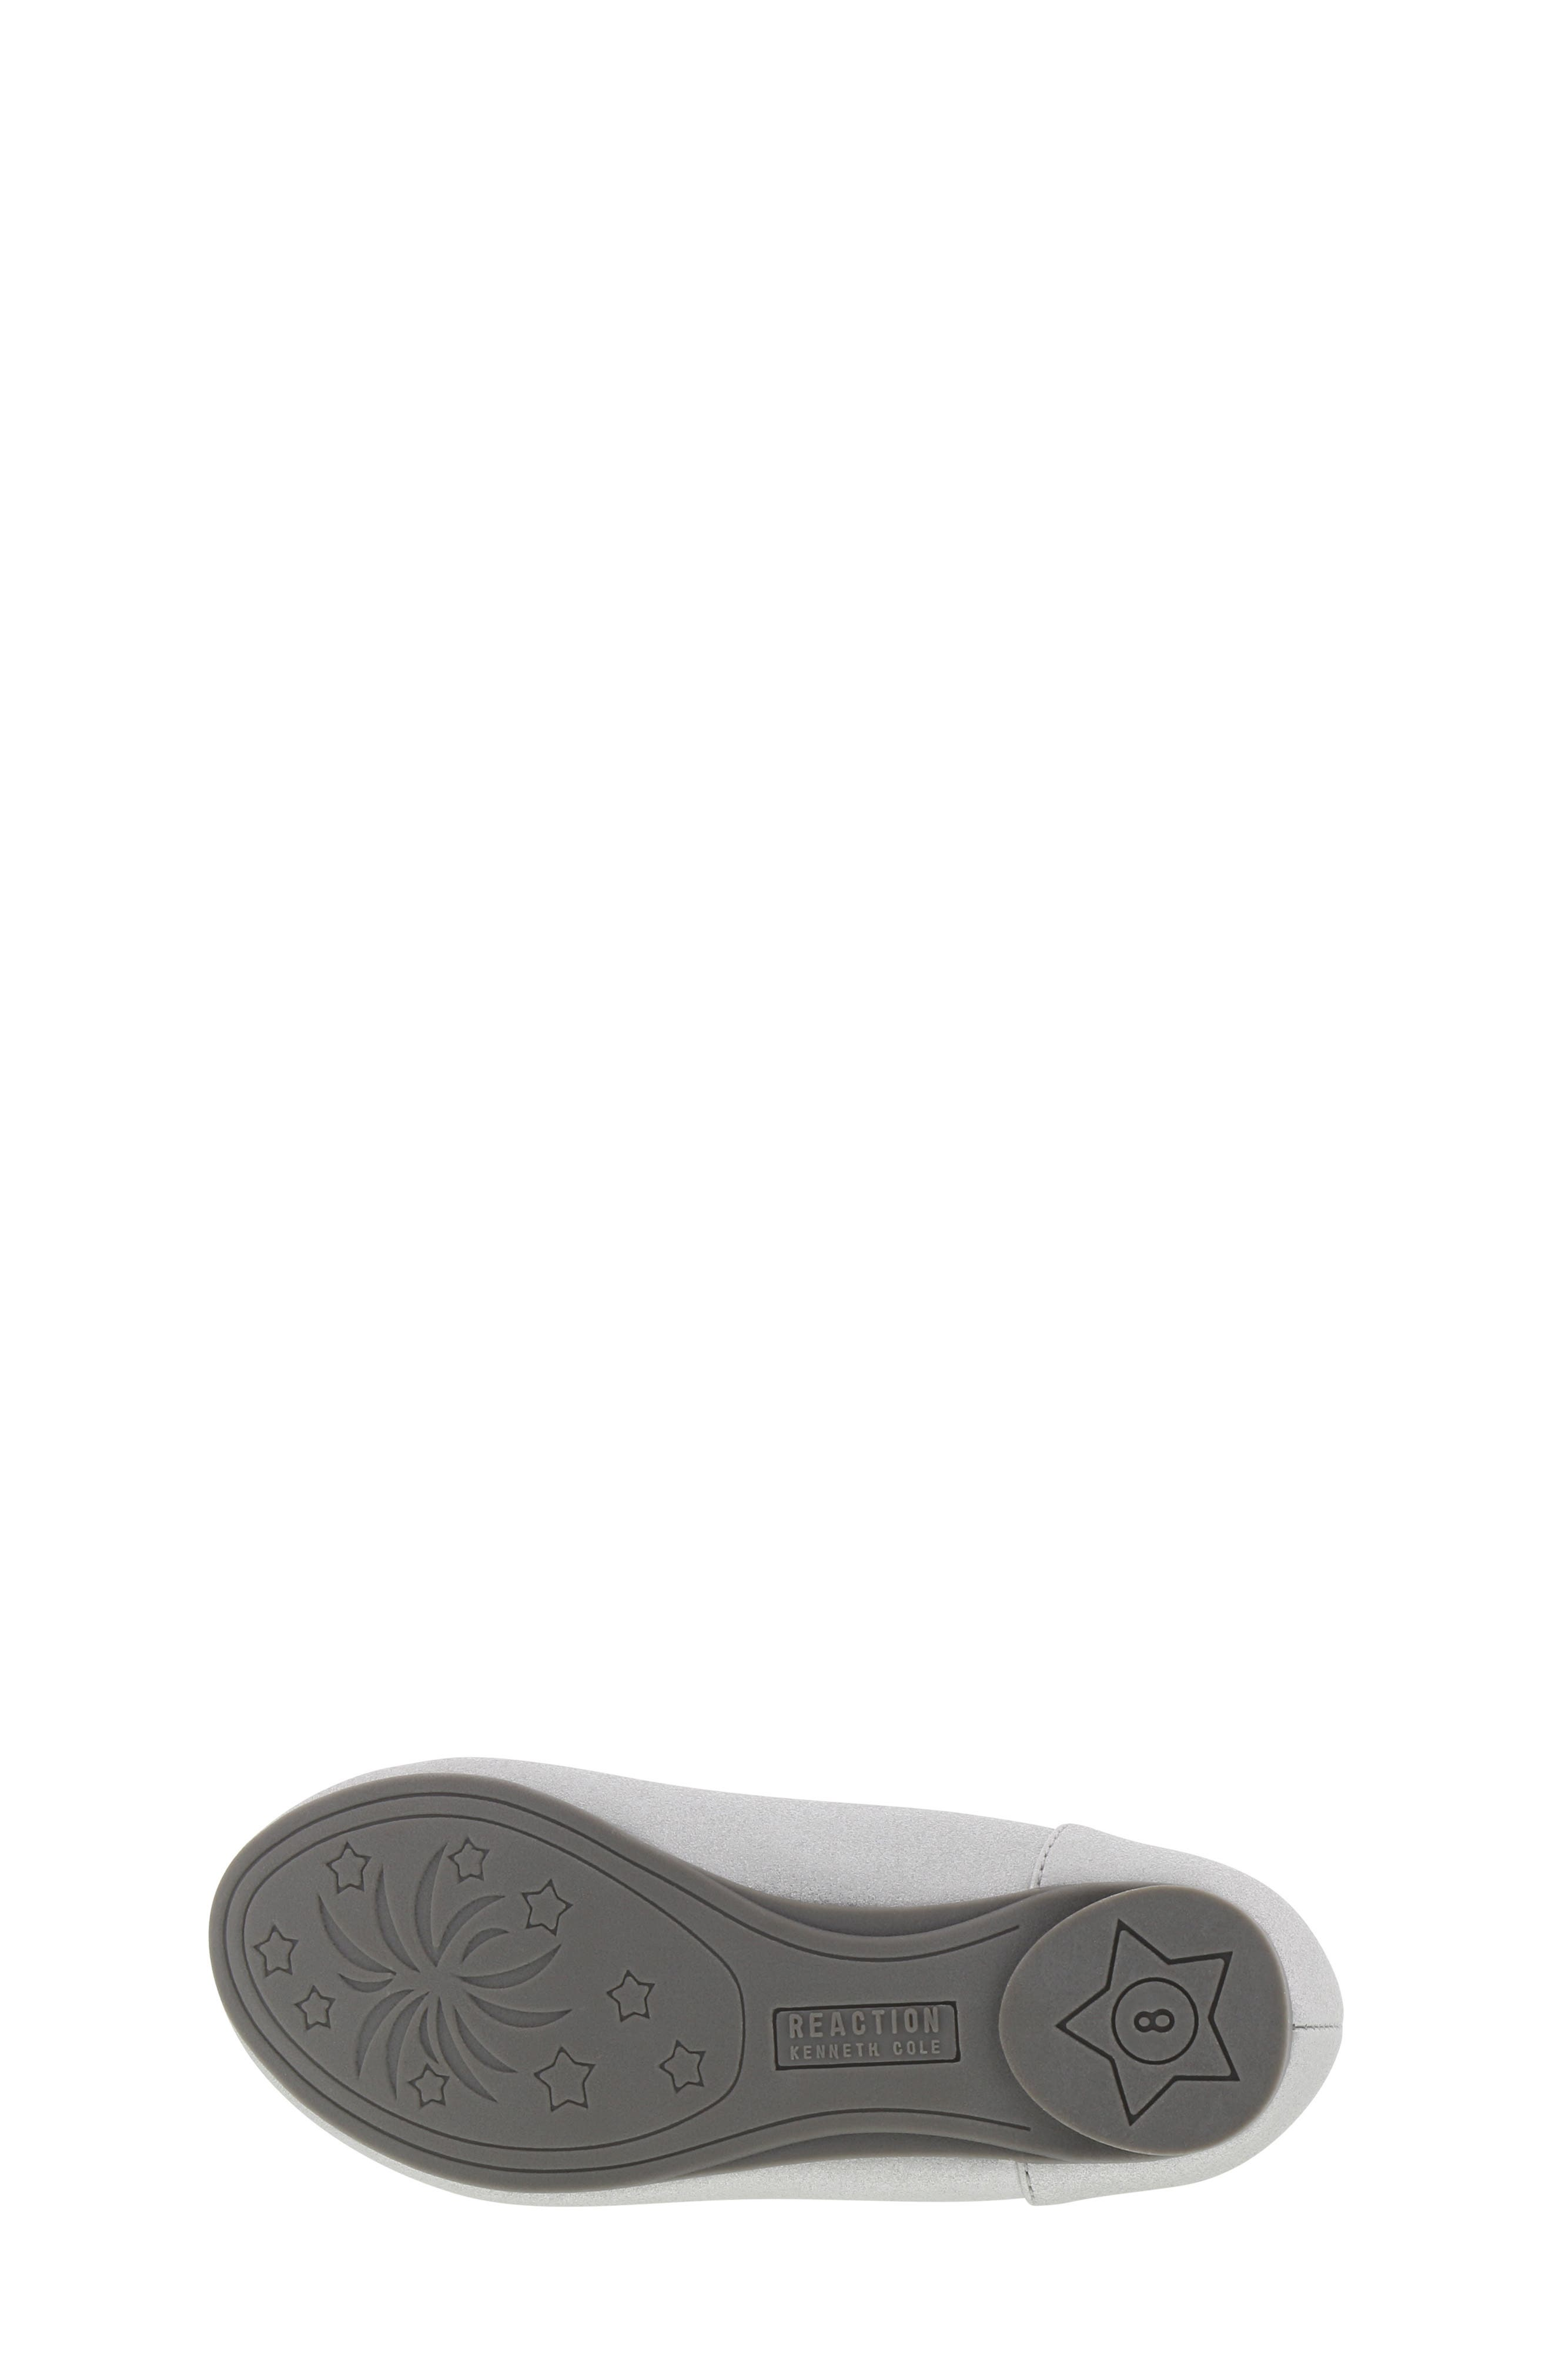 REACTION KENNETH COLE, Tap Lily-T Embellished Flat, Alternate thumbnail 6, color, SILVER